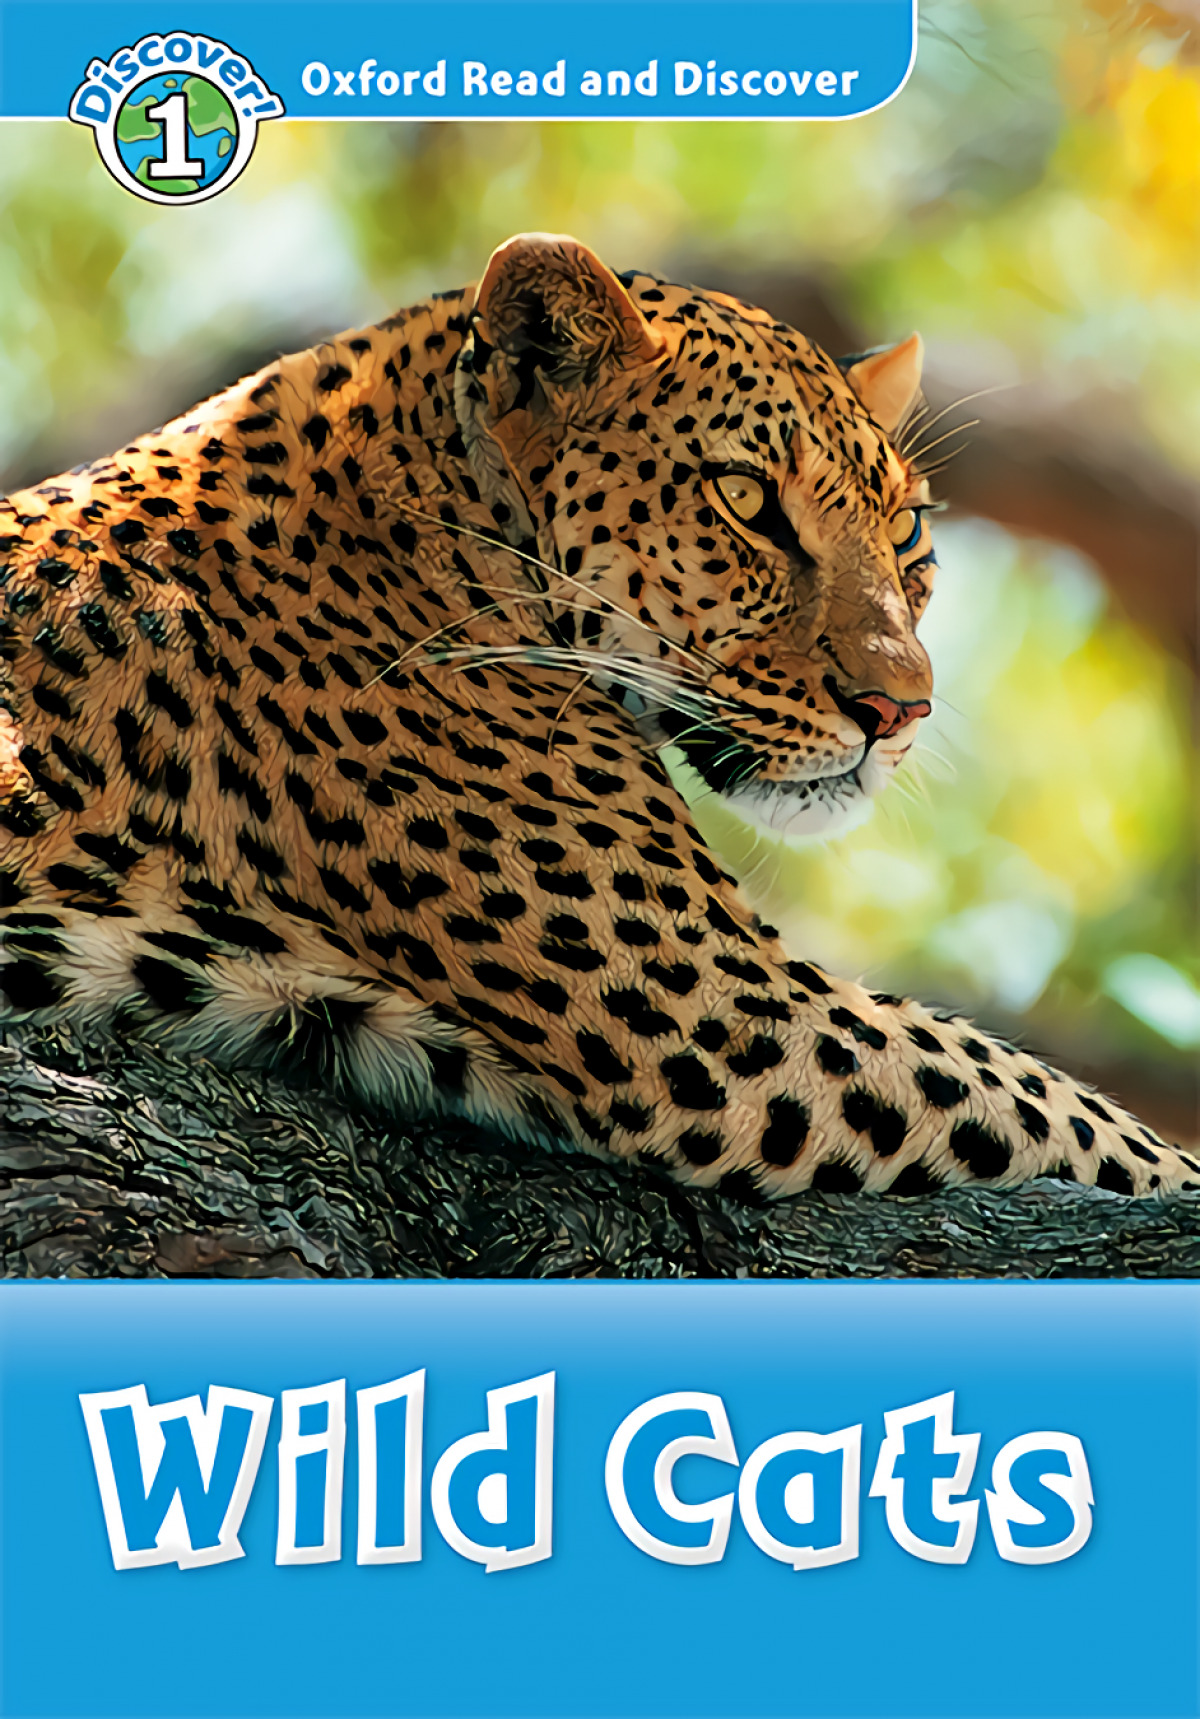 Oxford Read and Discover 1. Wild Cats MP3 Pack